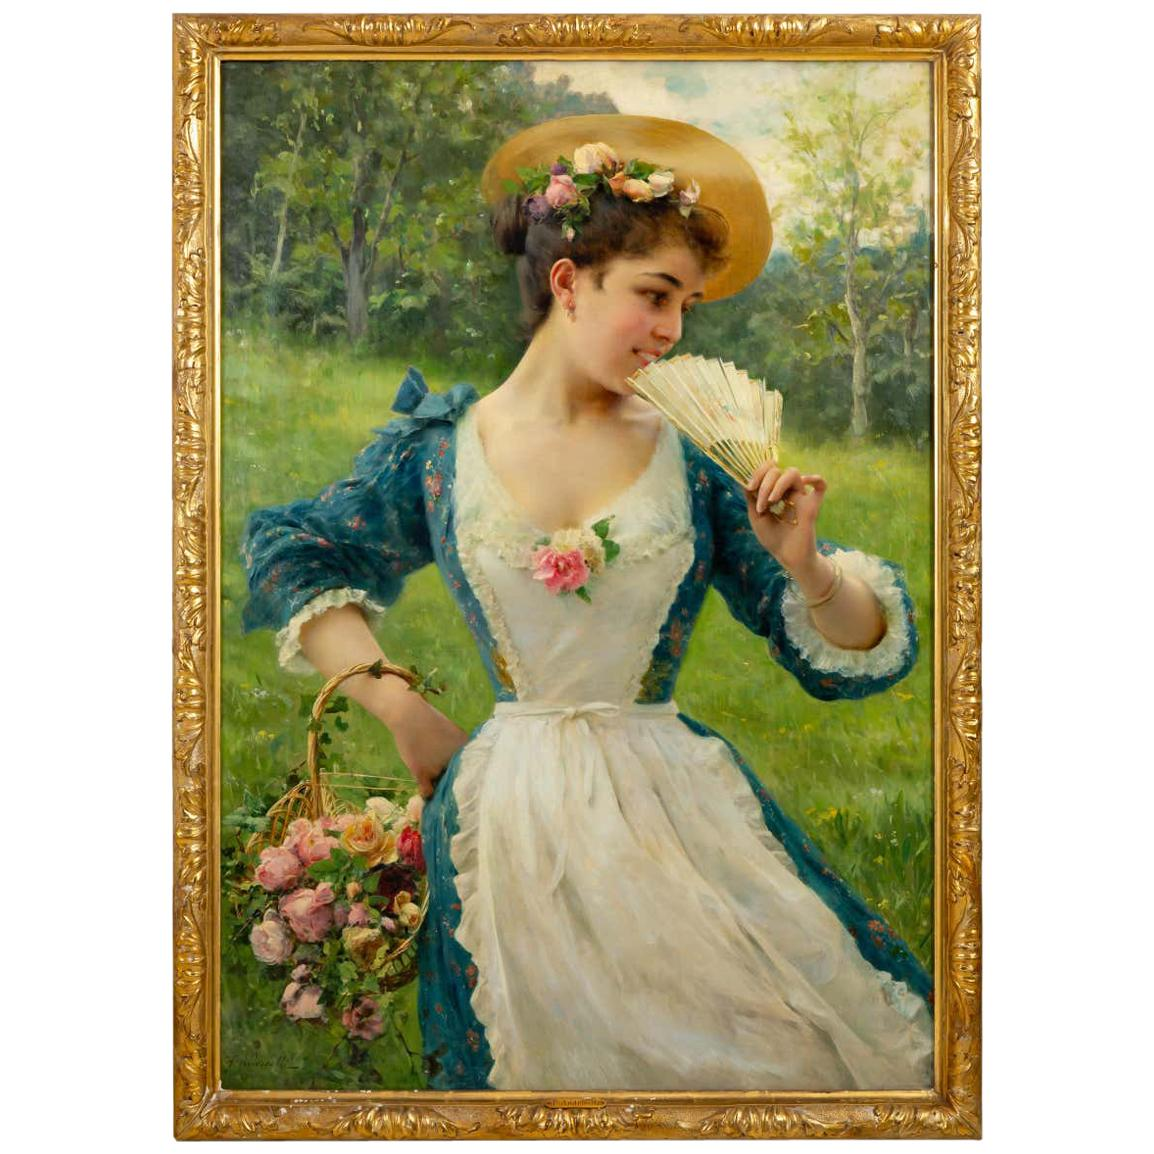 Young Beauty with a Basket of Roses, Signed F. Andreotti